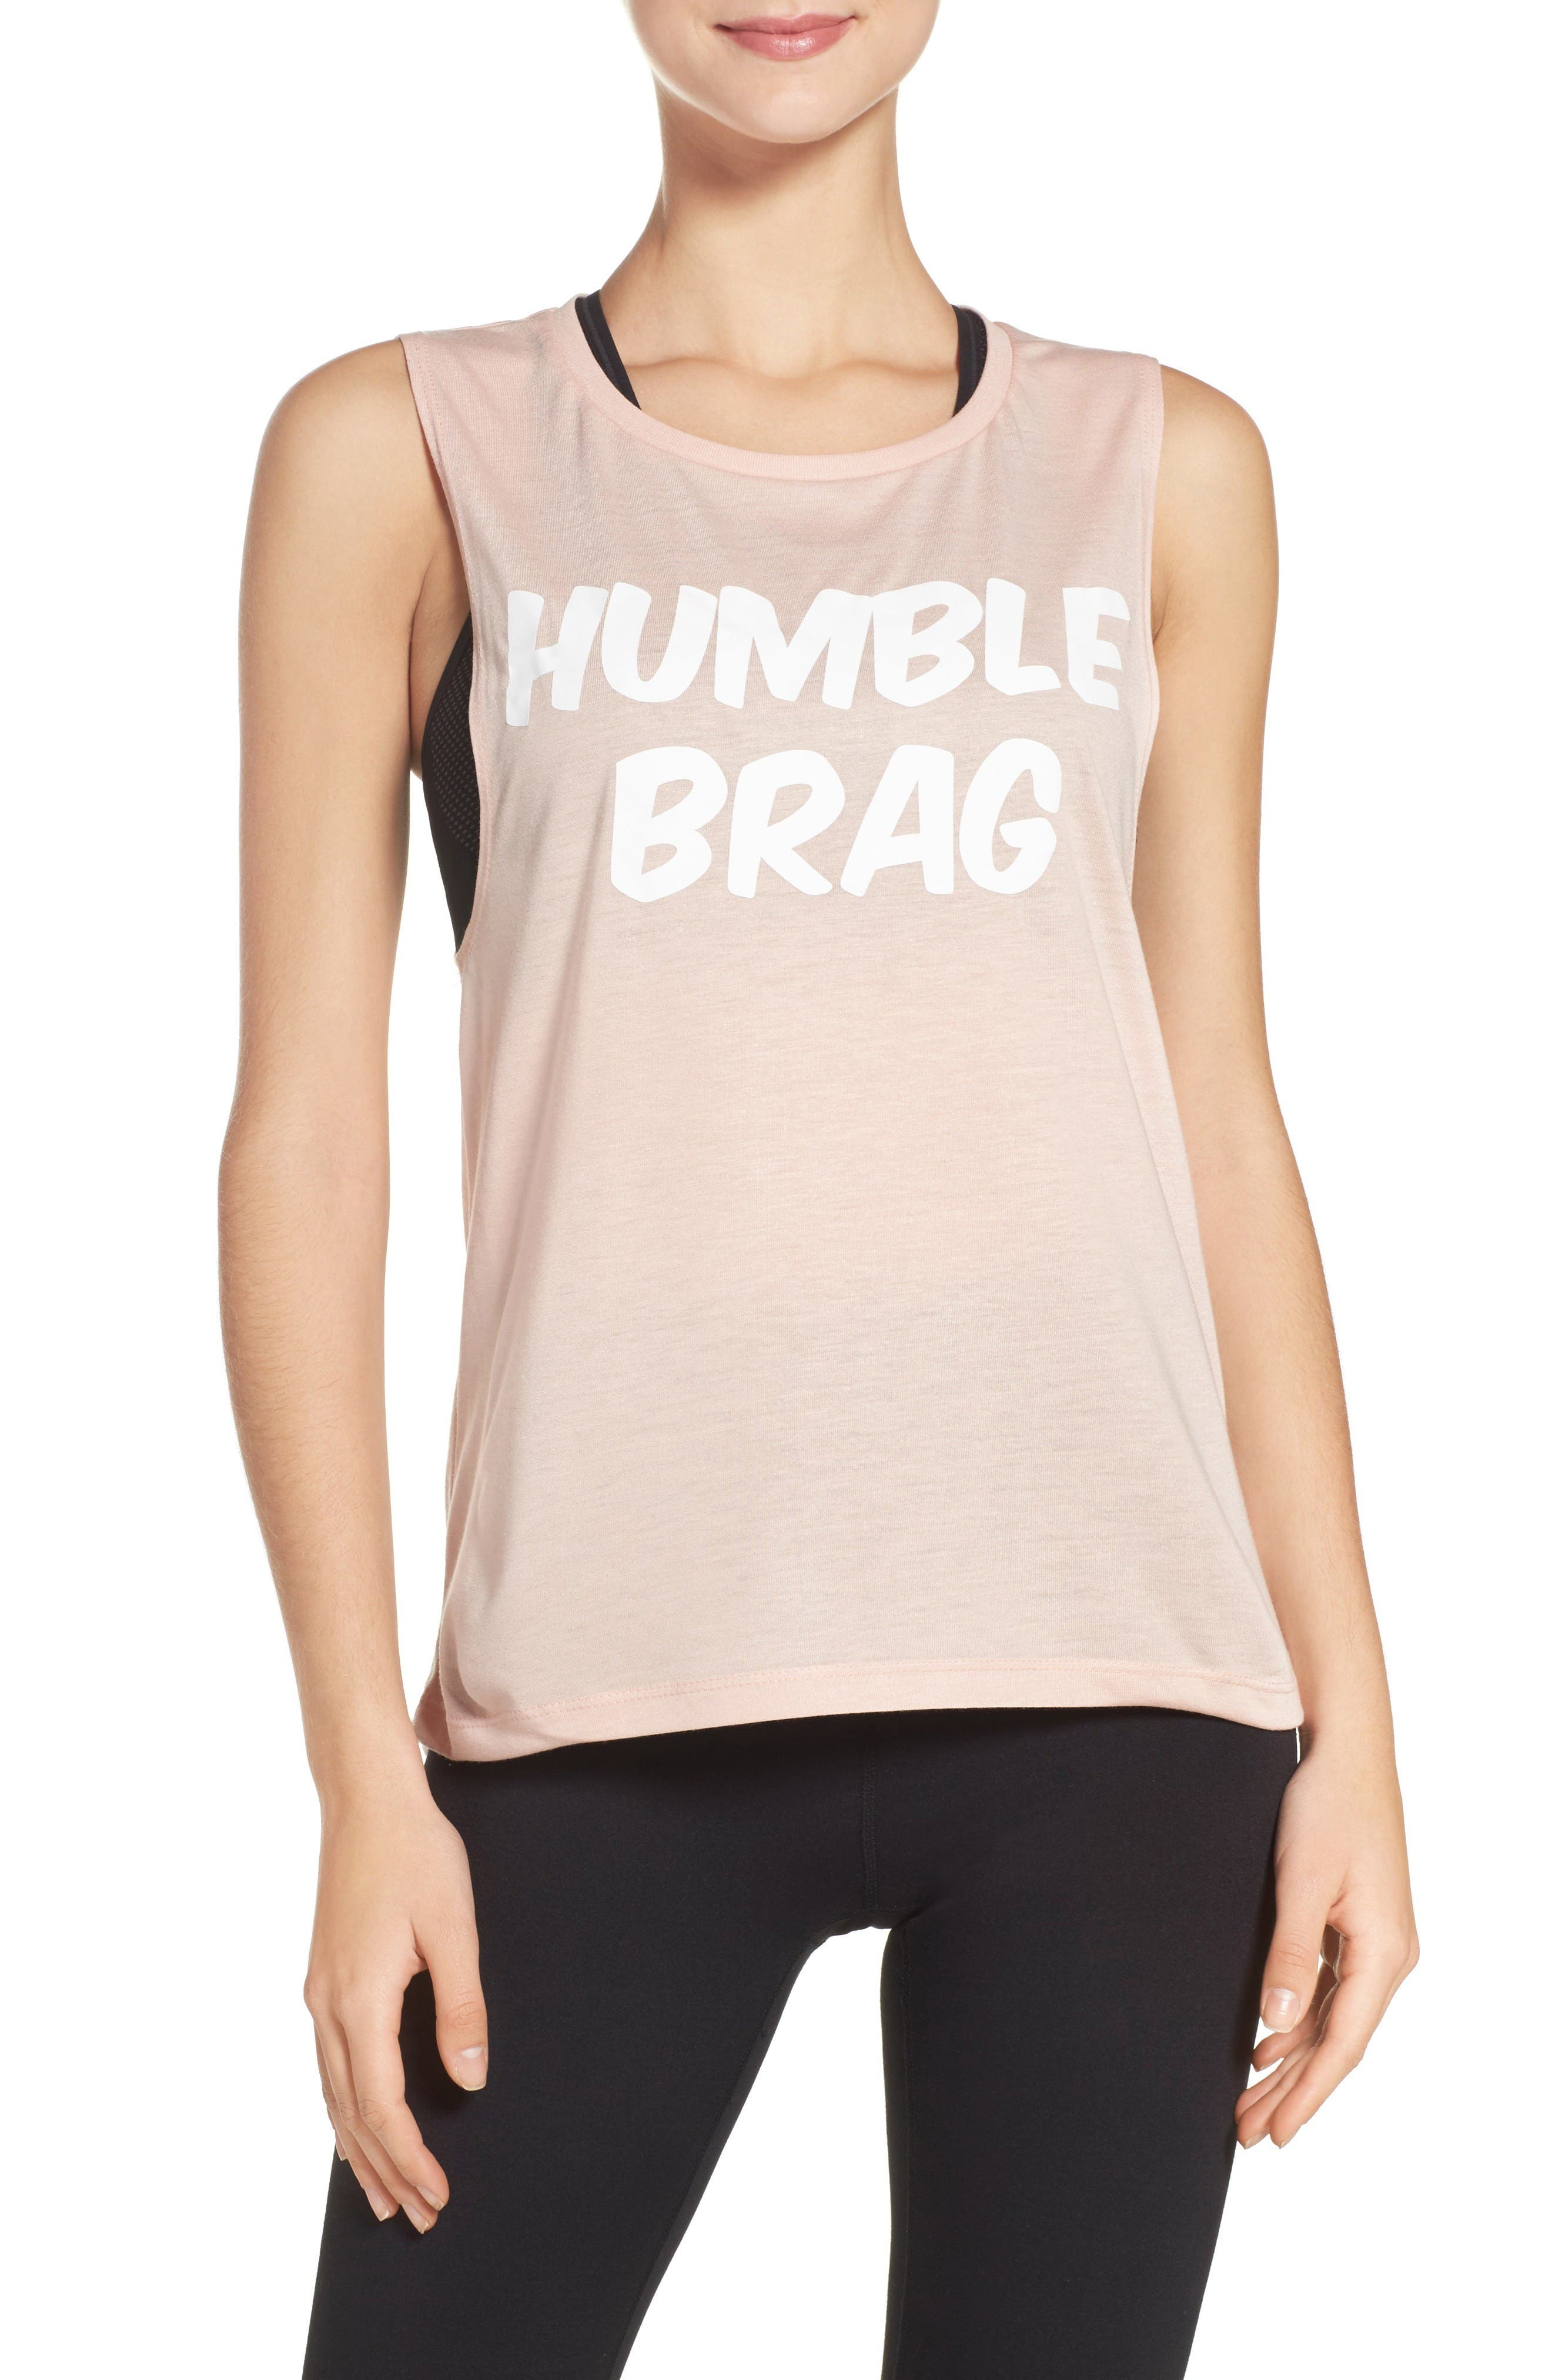 Private Party Humble Brag Tank